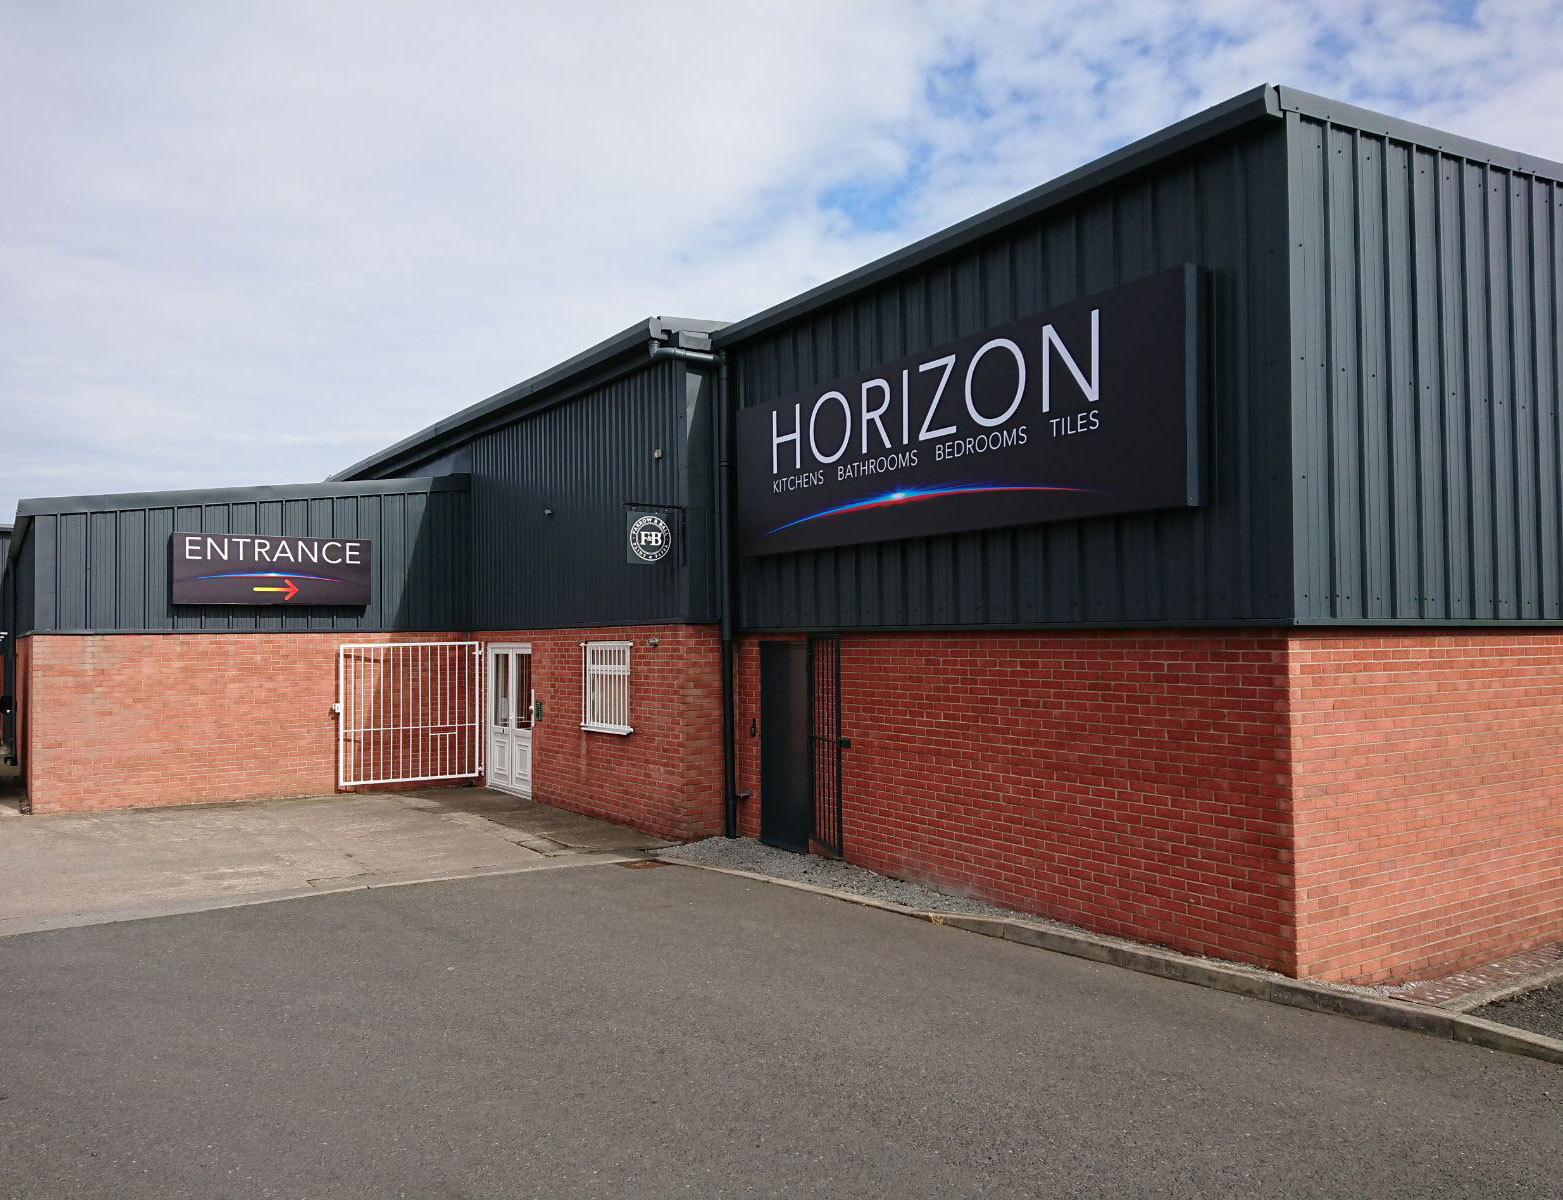 Horizon-tile-and-bathroom-centre-workington-cumbria-2017